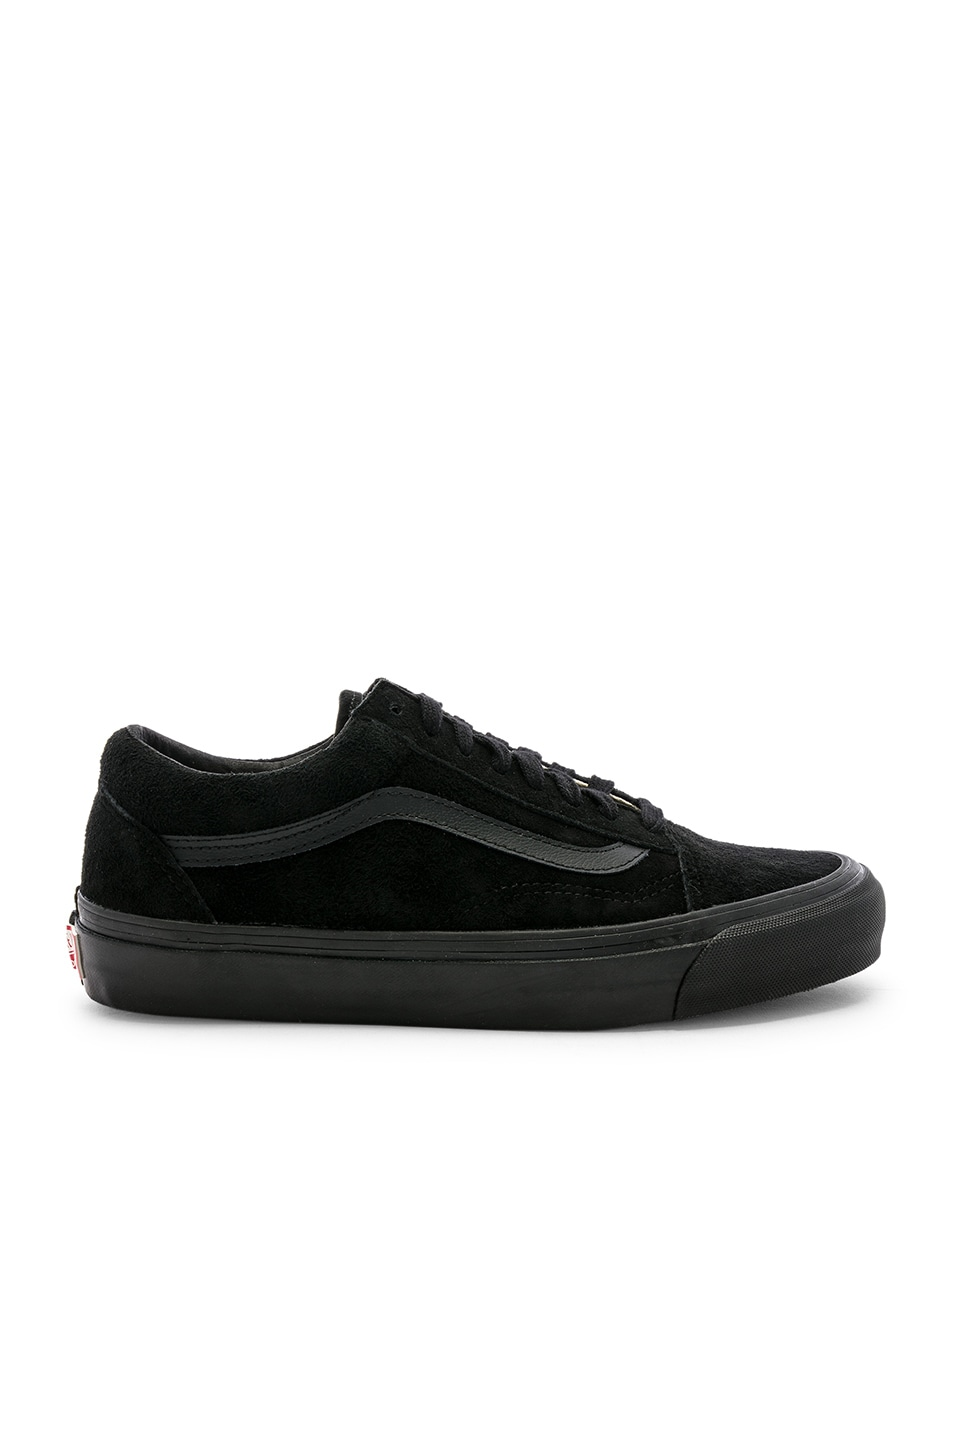 Image 2 of Vans Vault OG Old Skool LX in Black